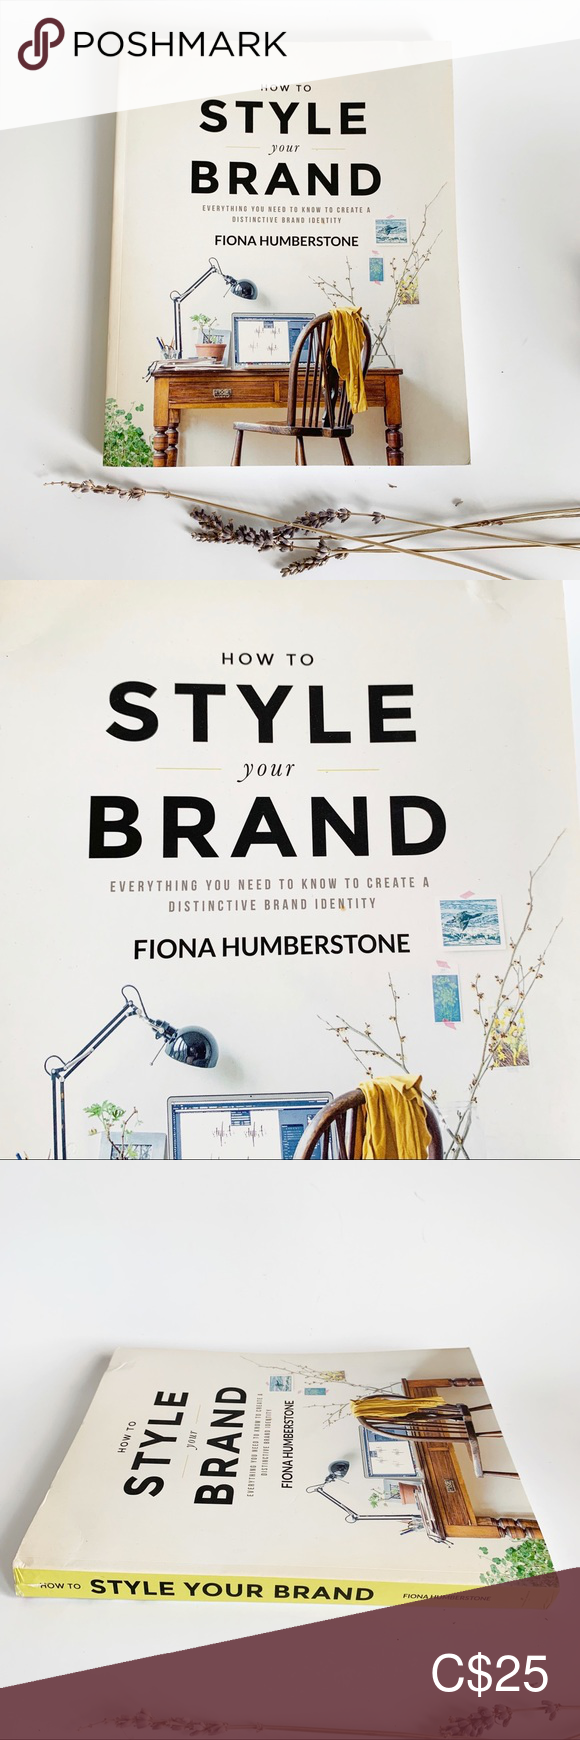 How To Style Your Brand By Fiona Humberstone Style Brand Coffee Table Books